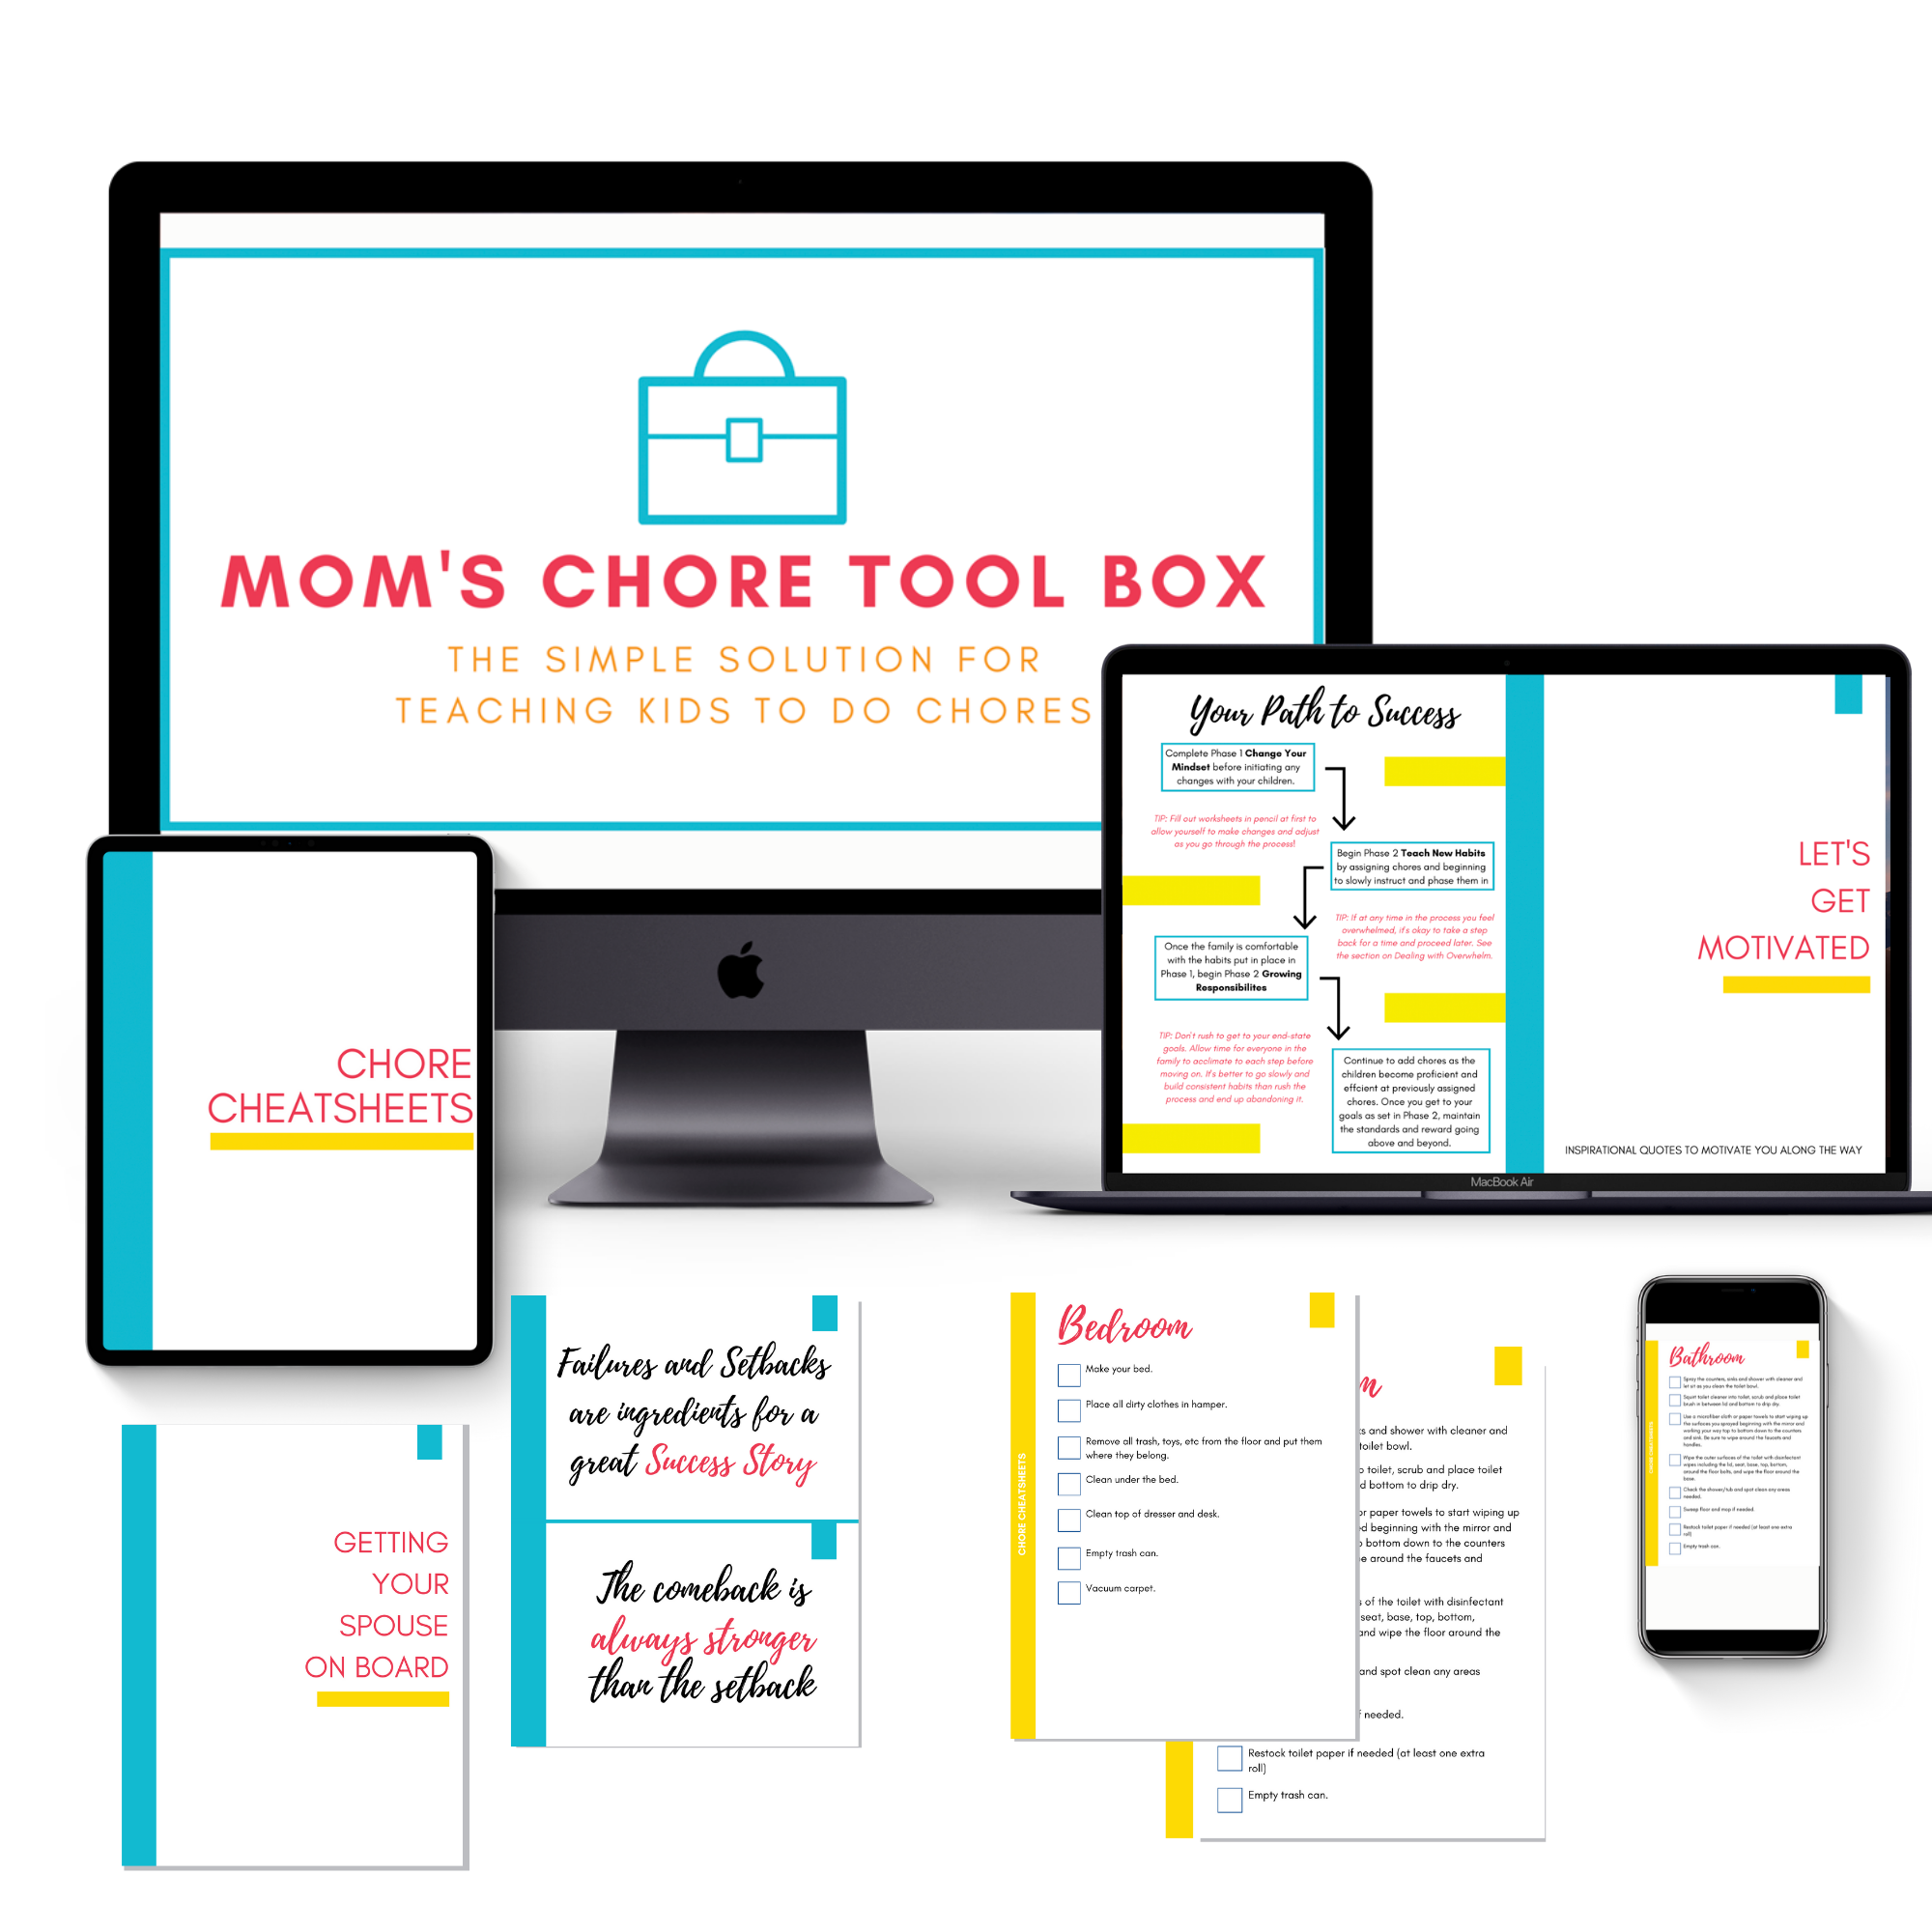 mock up of mom's chore tool box online course